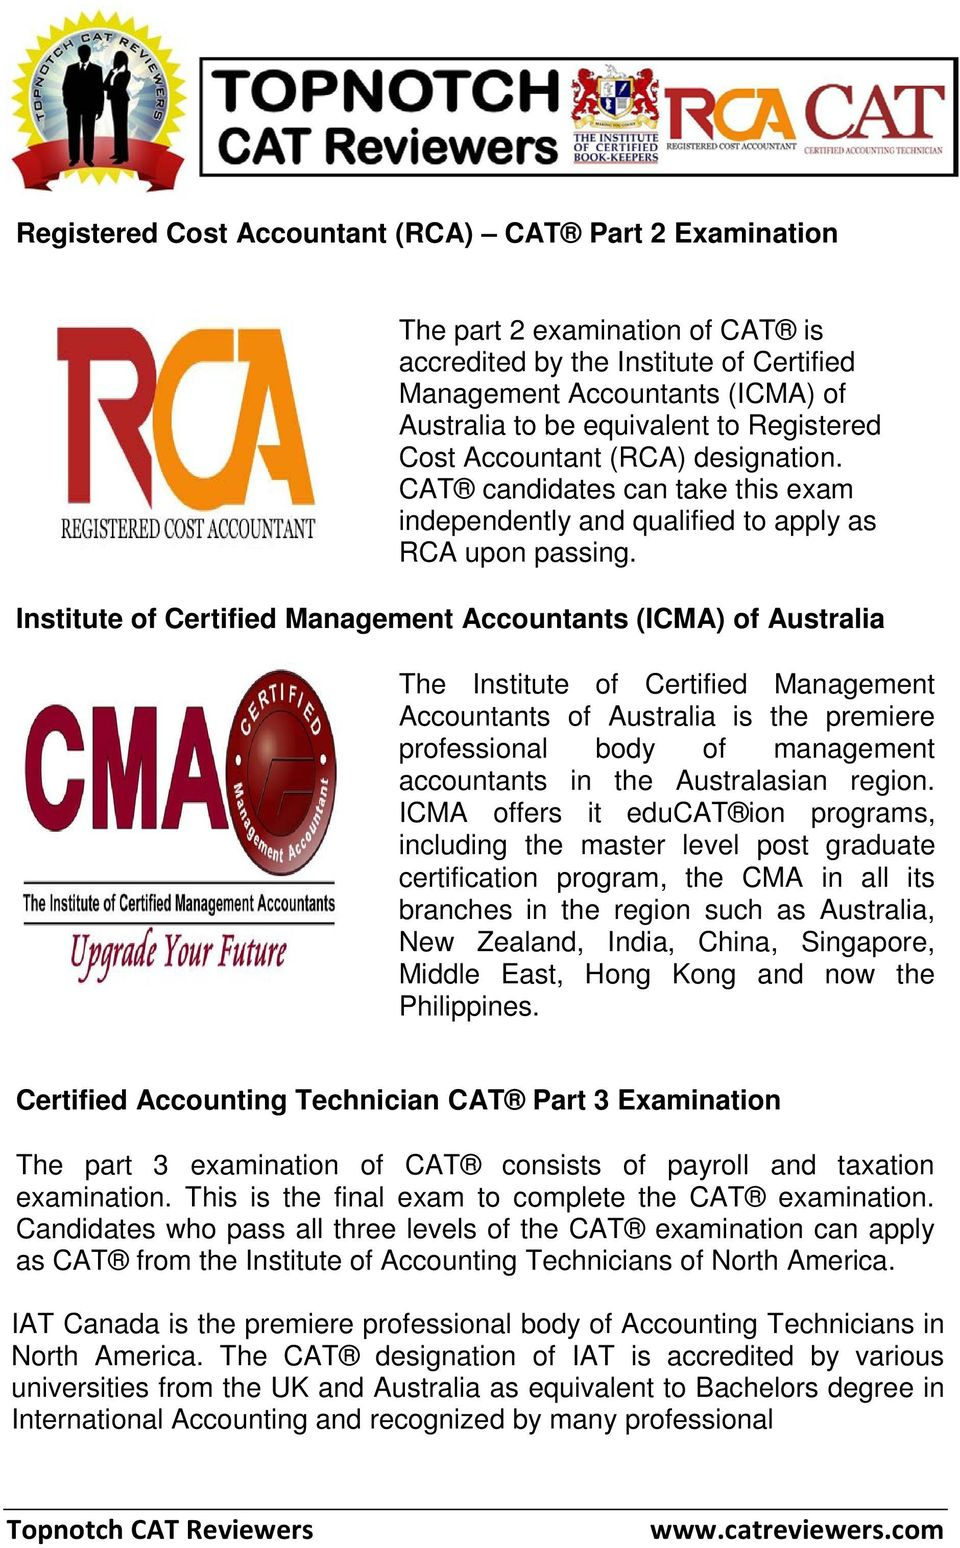 Certified Accounting Technician Registered Cost Accountant Certified